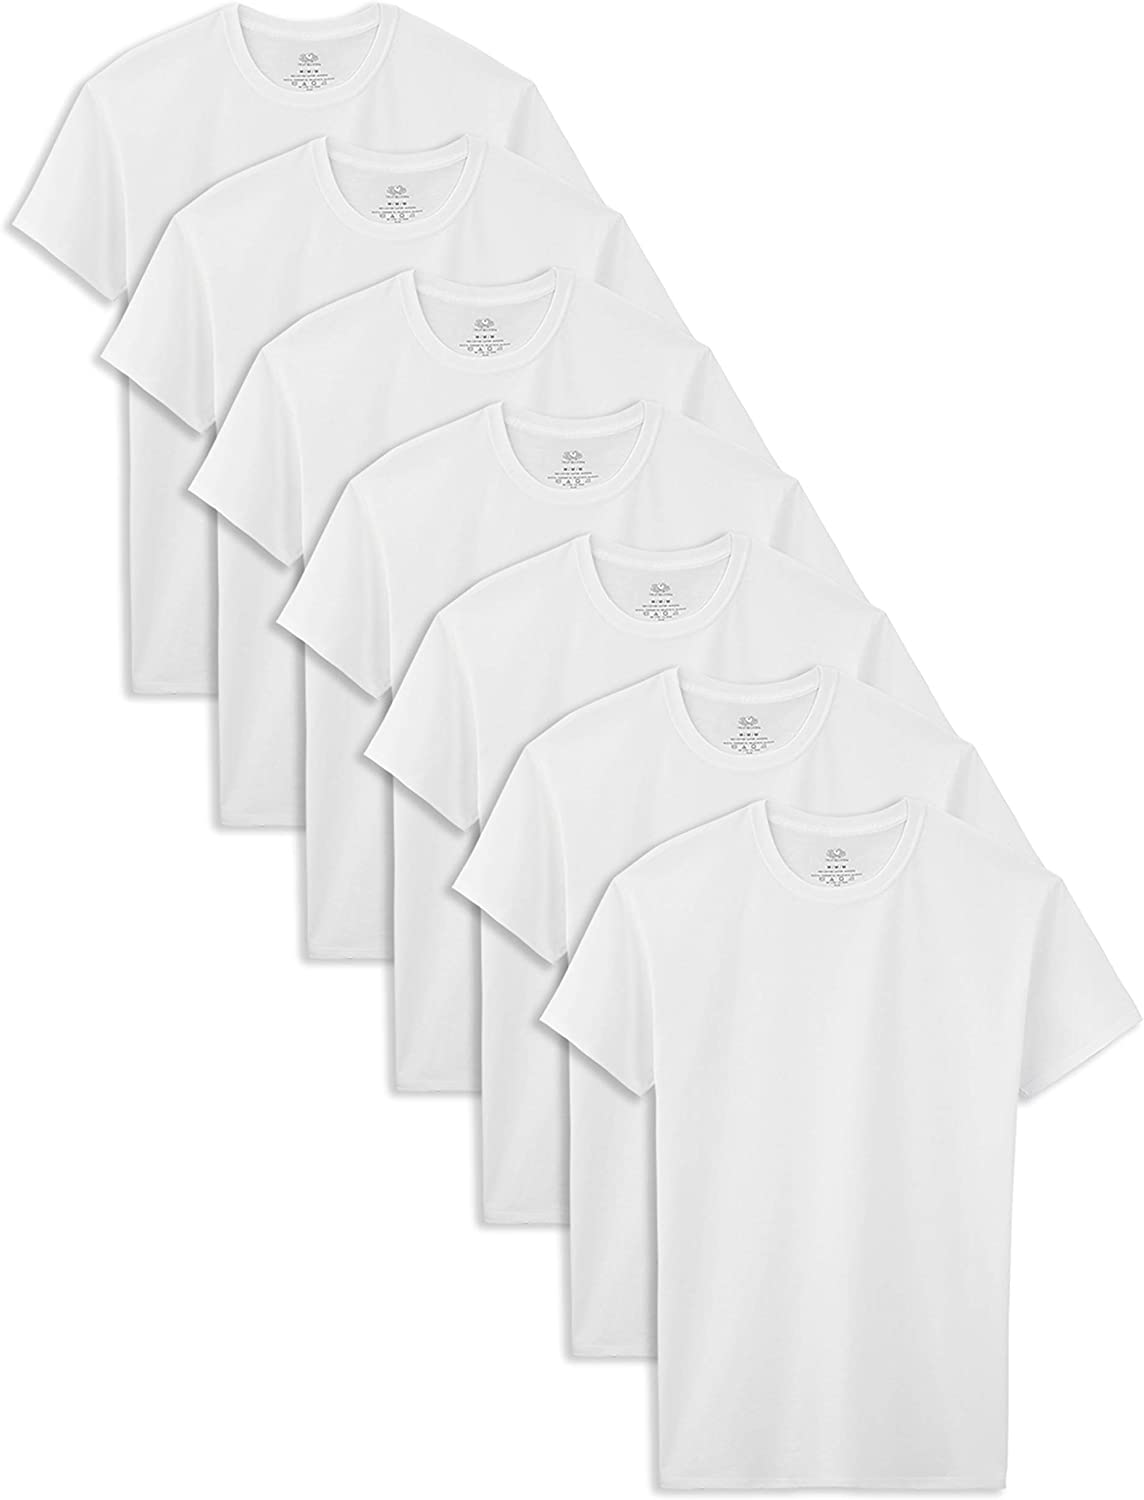 Fruit of the Loom Boys' Cotton White T Shirt